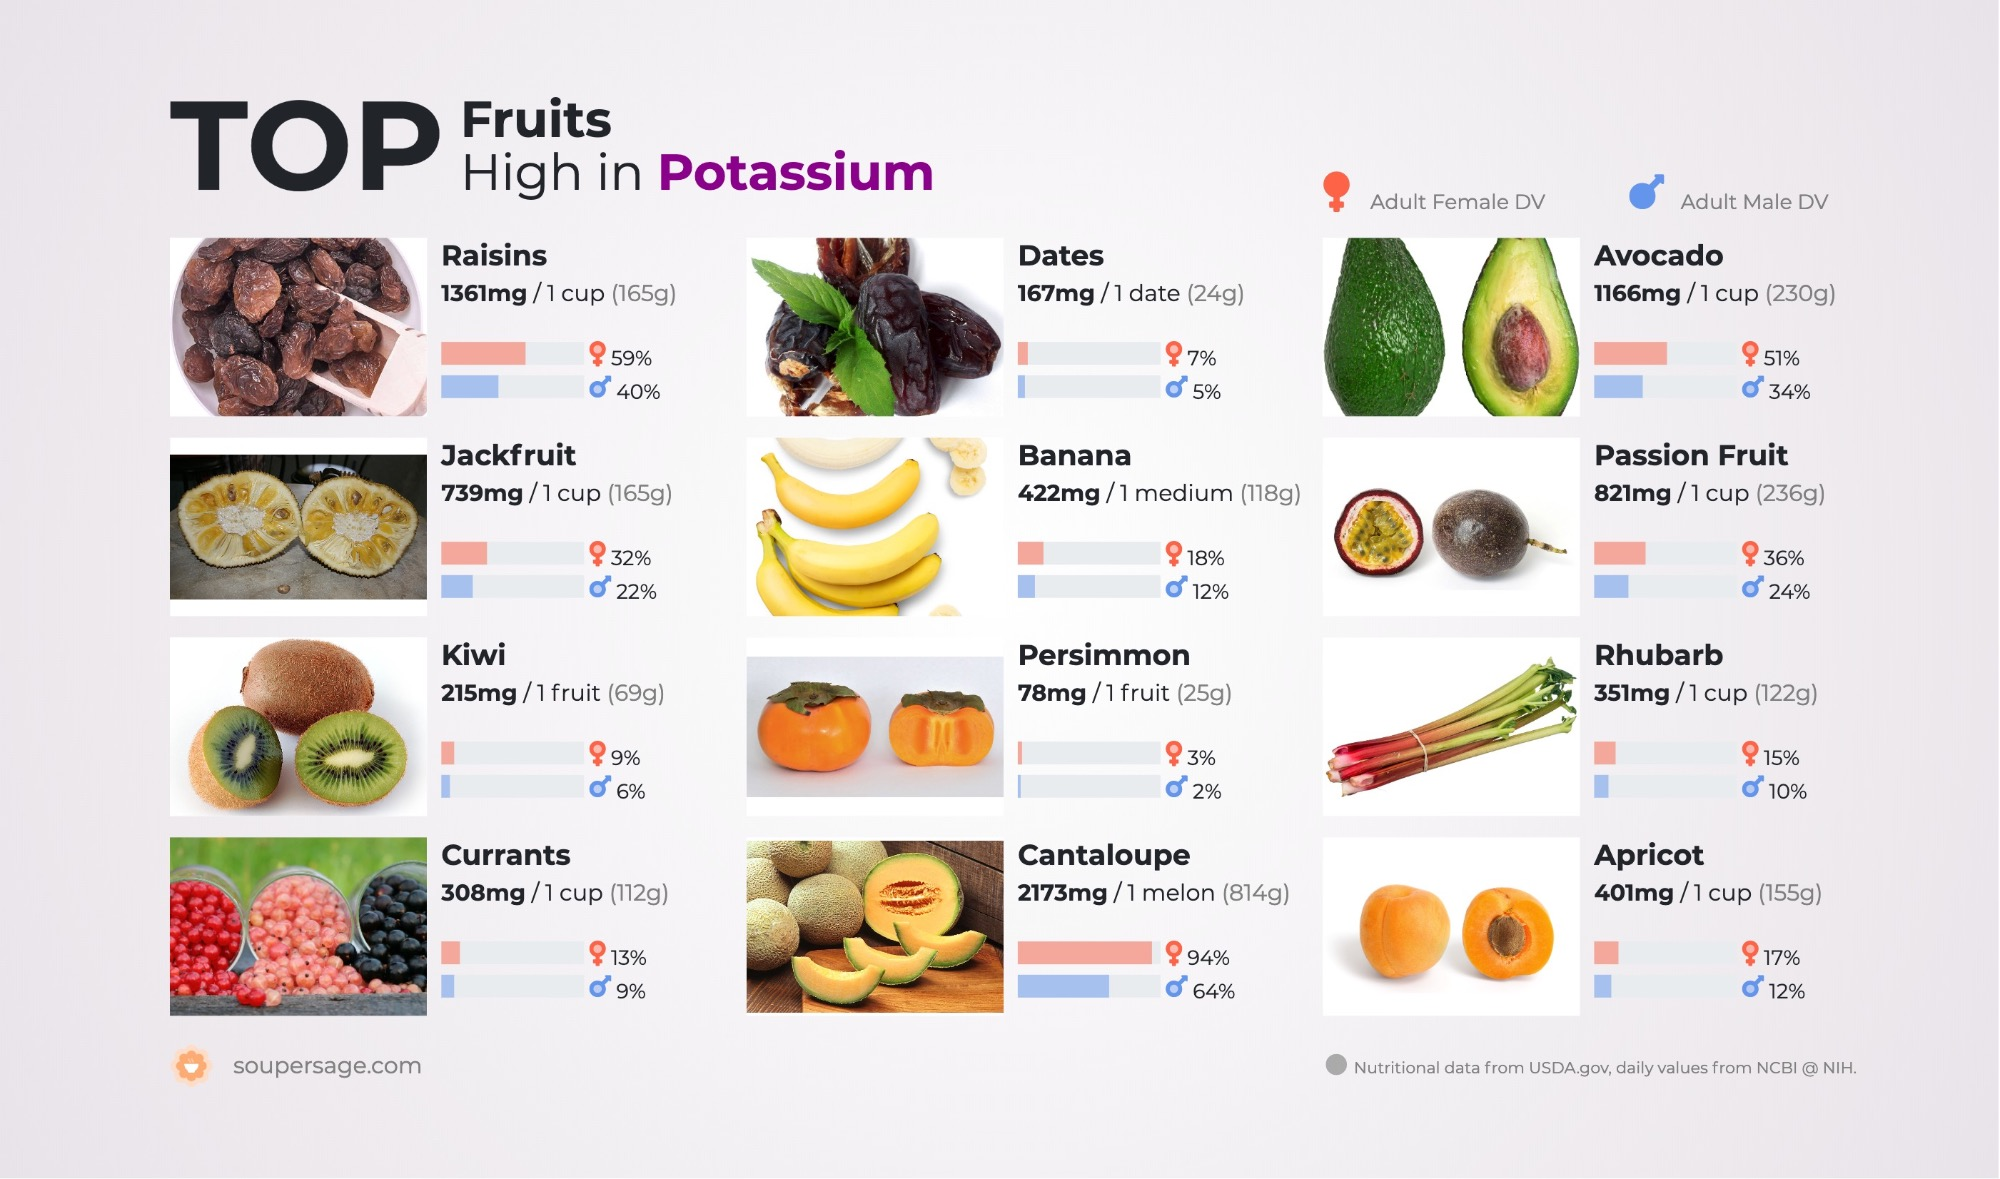 image of Top Fruits High in Potassium